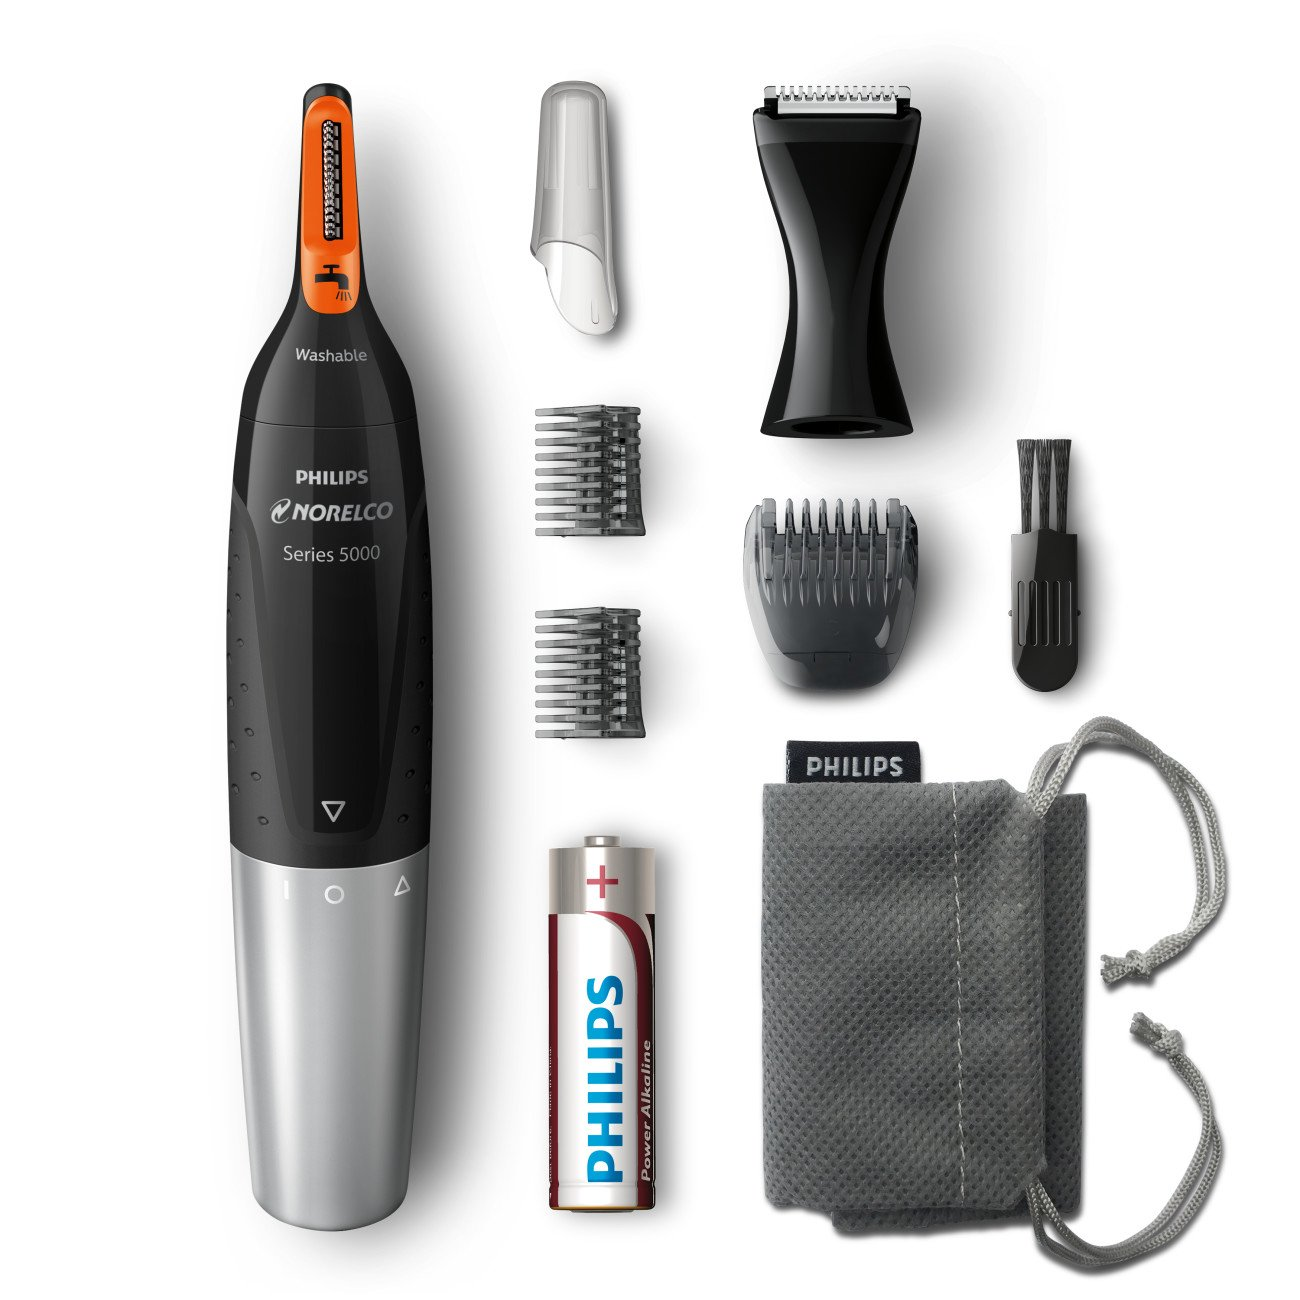 Philips Norelco NT5175/42, Nose Hair Trimmer 5100,Washable Mens Precision Groomer for Nose, Ears, Eyebrows, Neck, and Sideburns